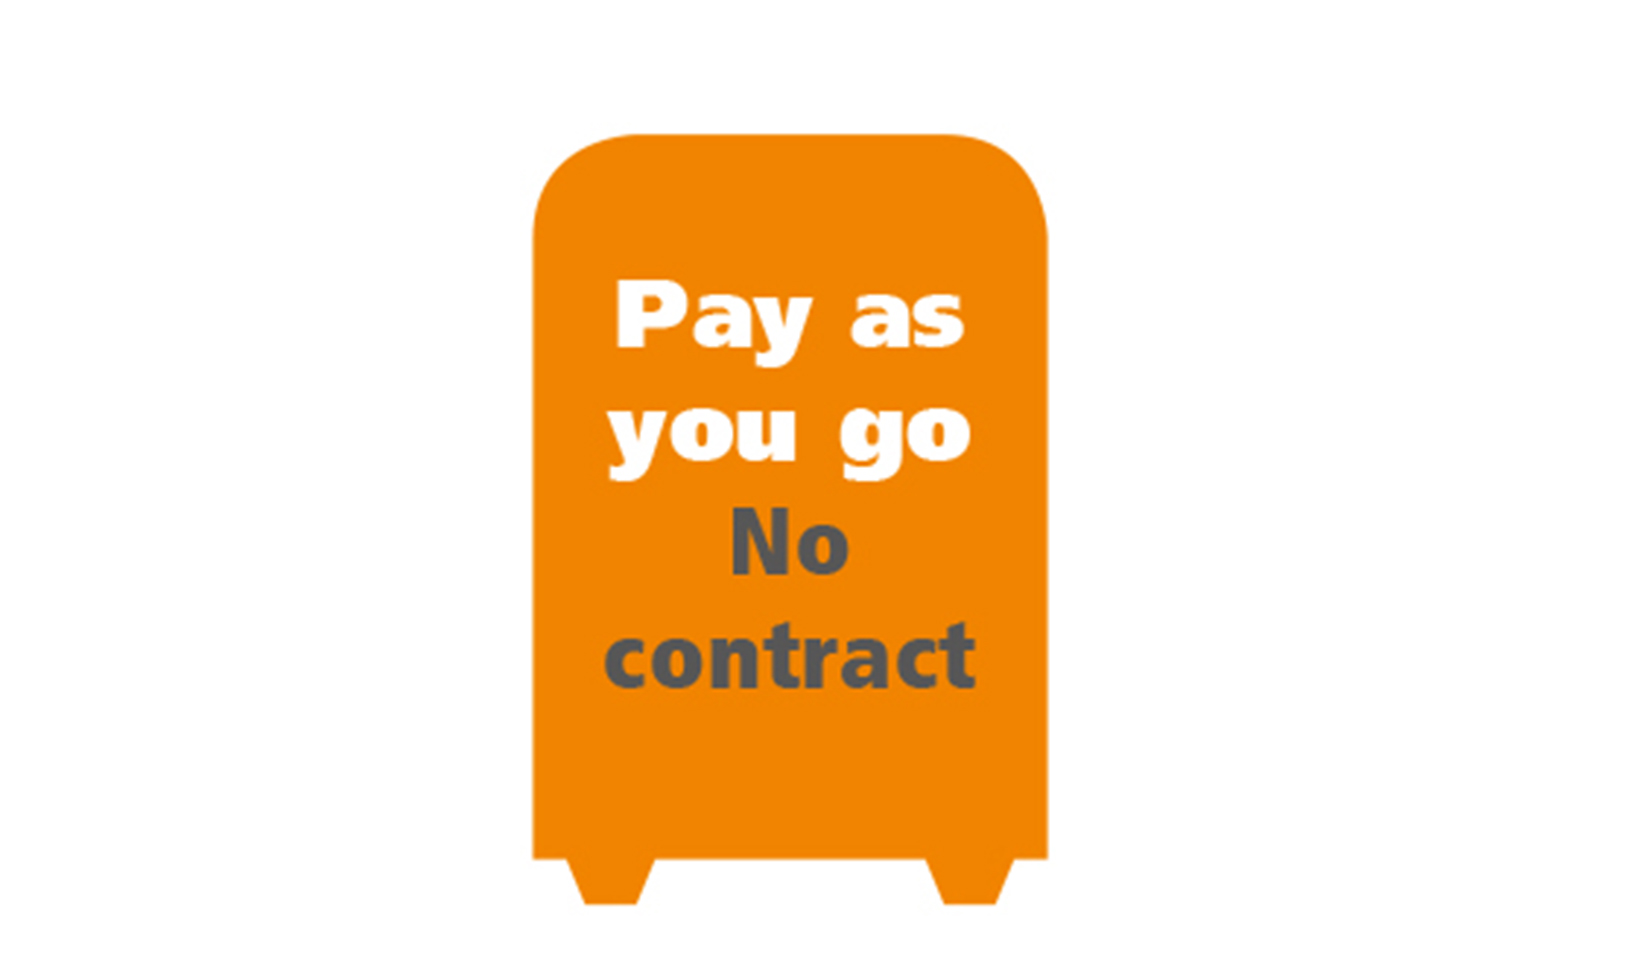 Pay as you go service contract